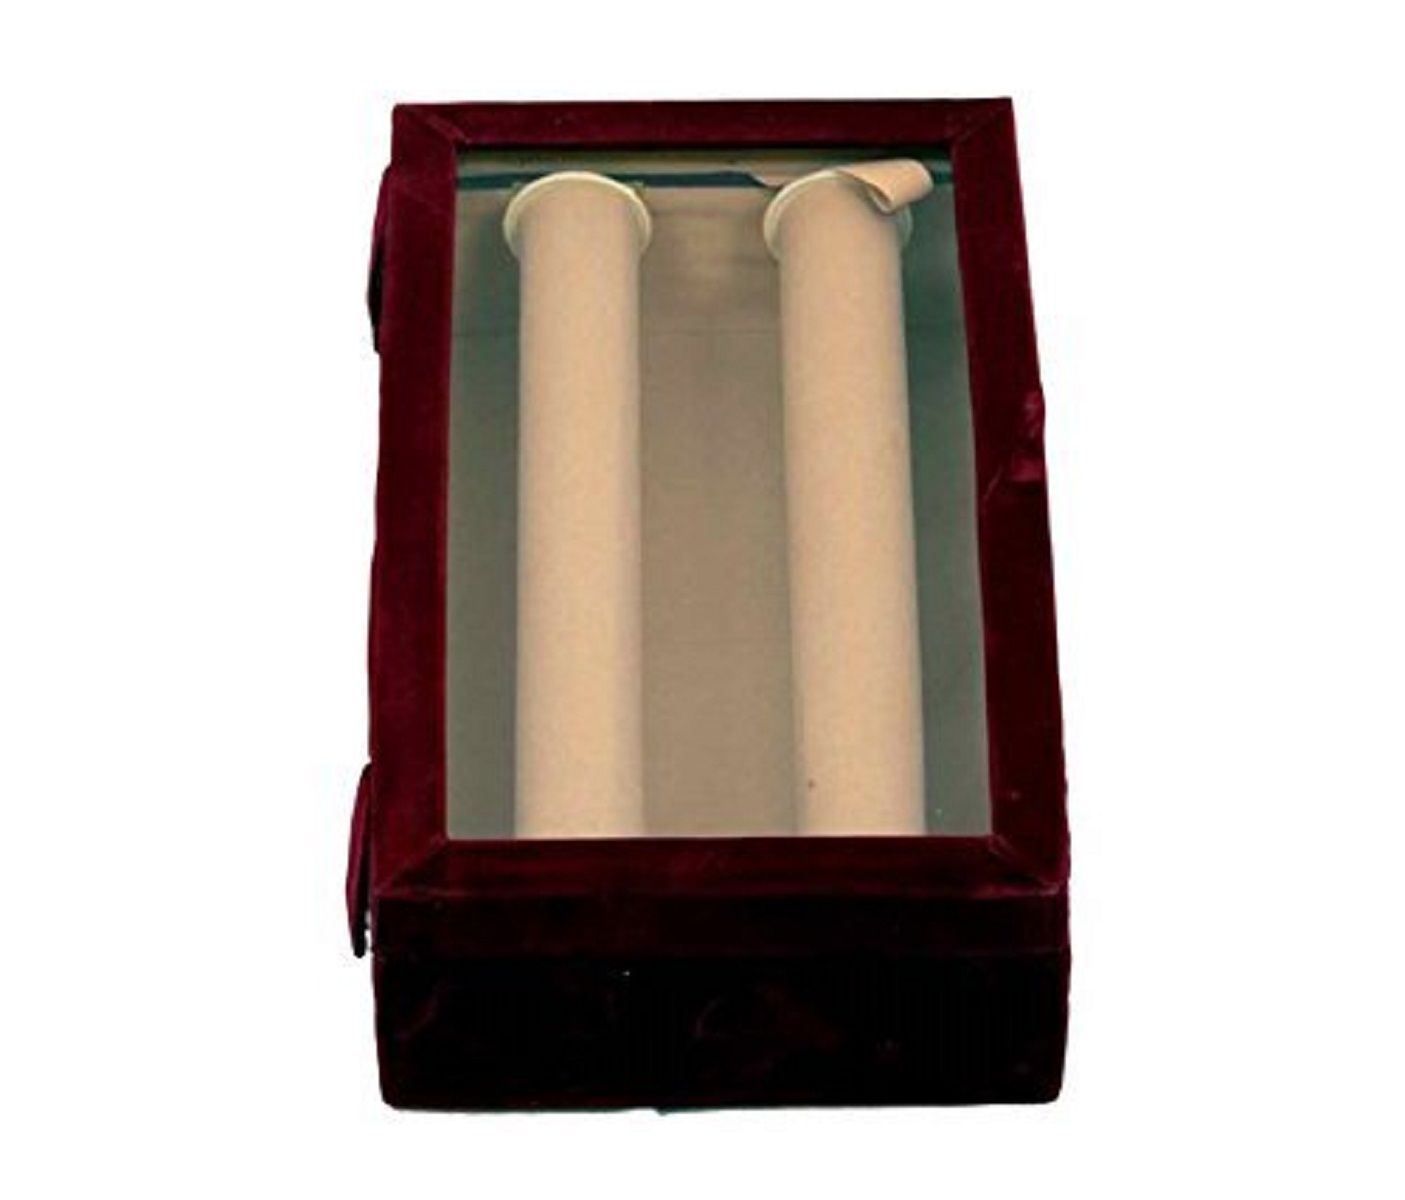 Kuber Industries 2 Rods Transparent Bangle Organizer Box Velvet Coated Set of 2 Pcs (Maroon) (Code-COM007)